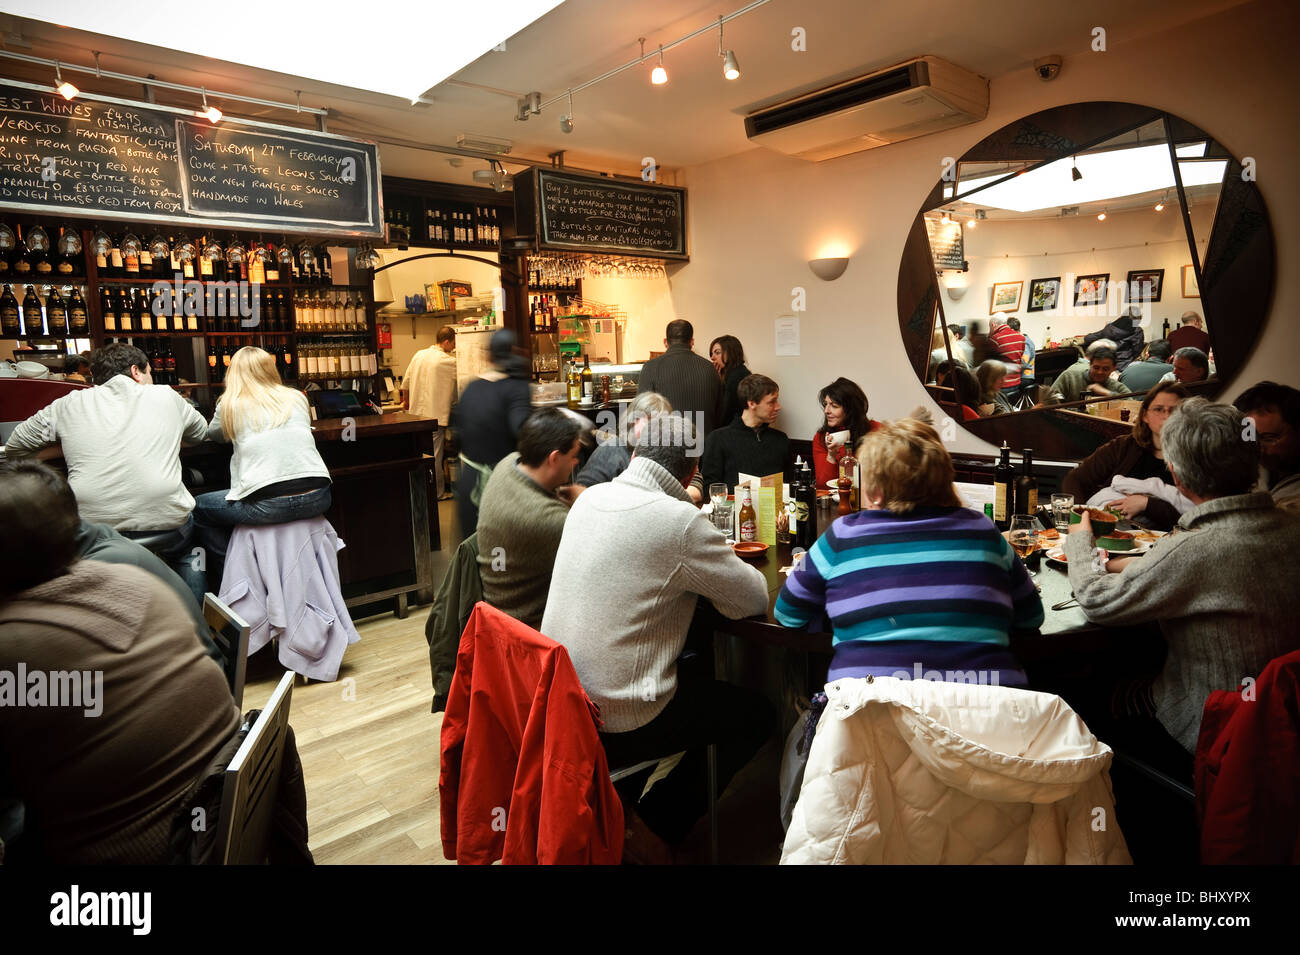 People eating lunch at Ultracomida Delicatessen and cafe tapas bar bistro, Aberystwyth Wales - Stock Image